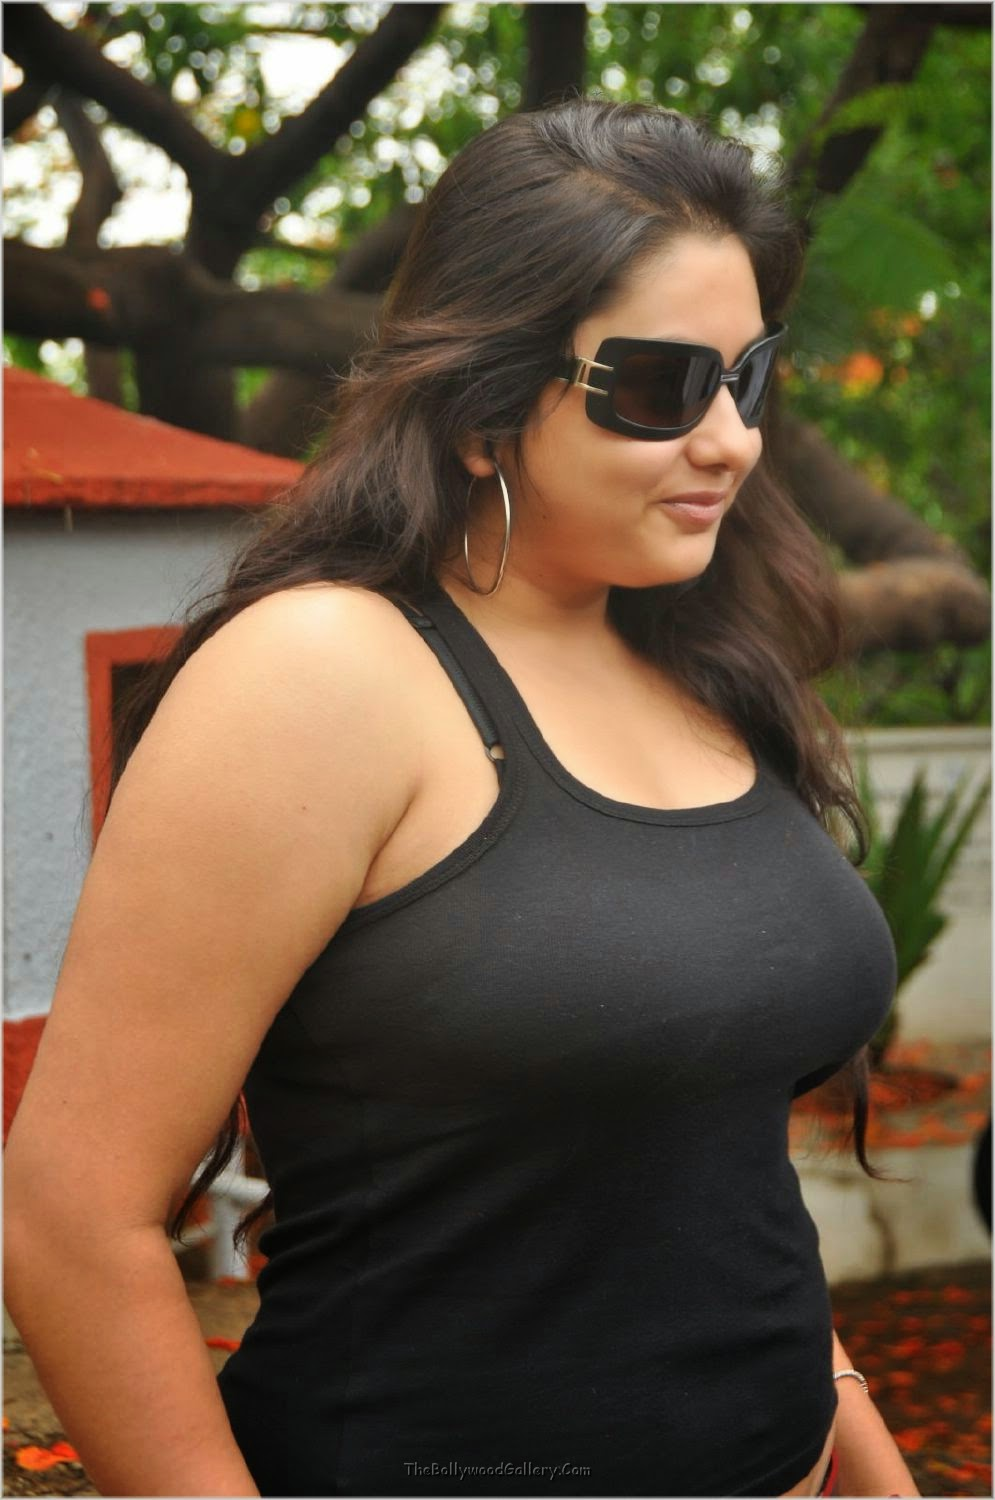 Namitha Hot Pics and Videos 2015 Exclusive | Bollywood Celebrity ...